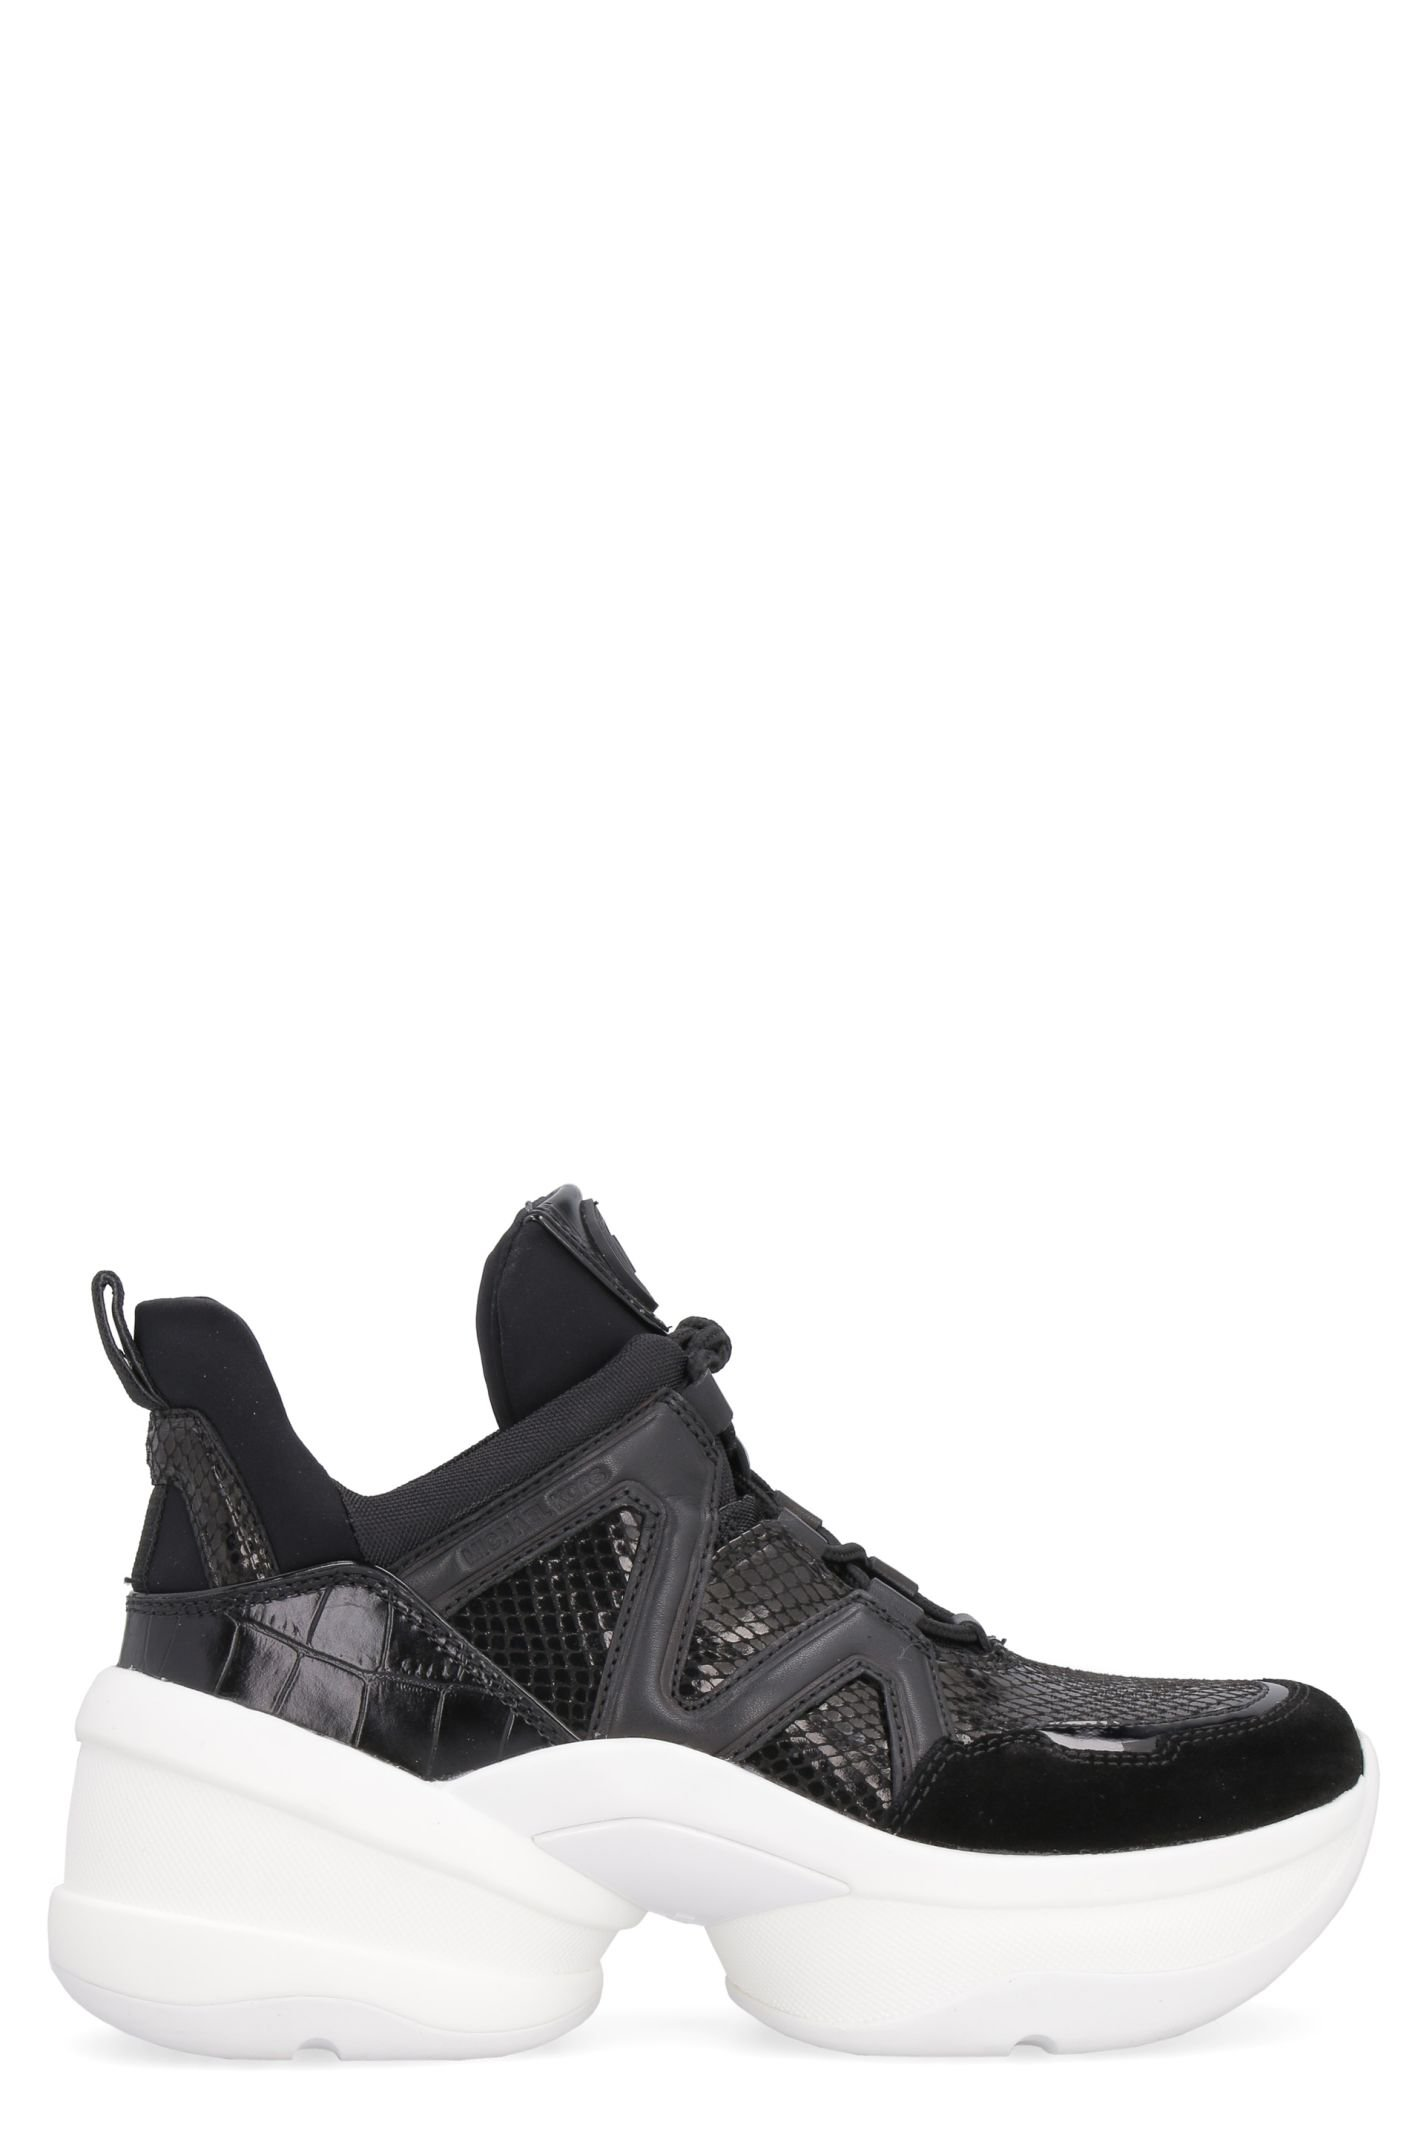 Michael Kors Olympia Techno-fabric And Leather Sneakers